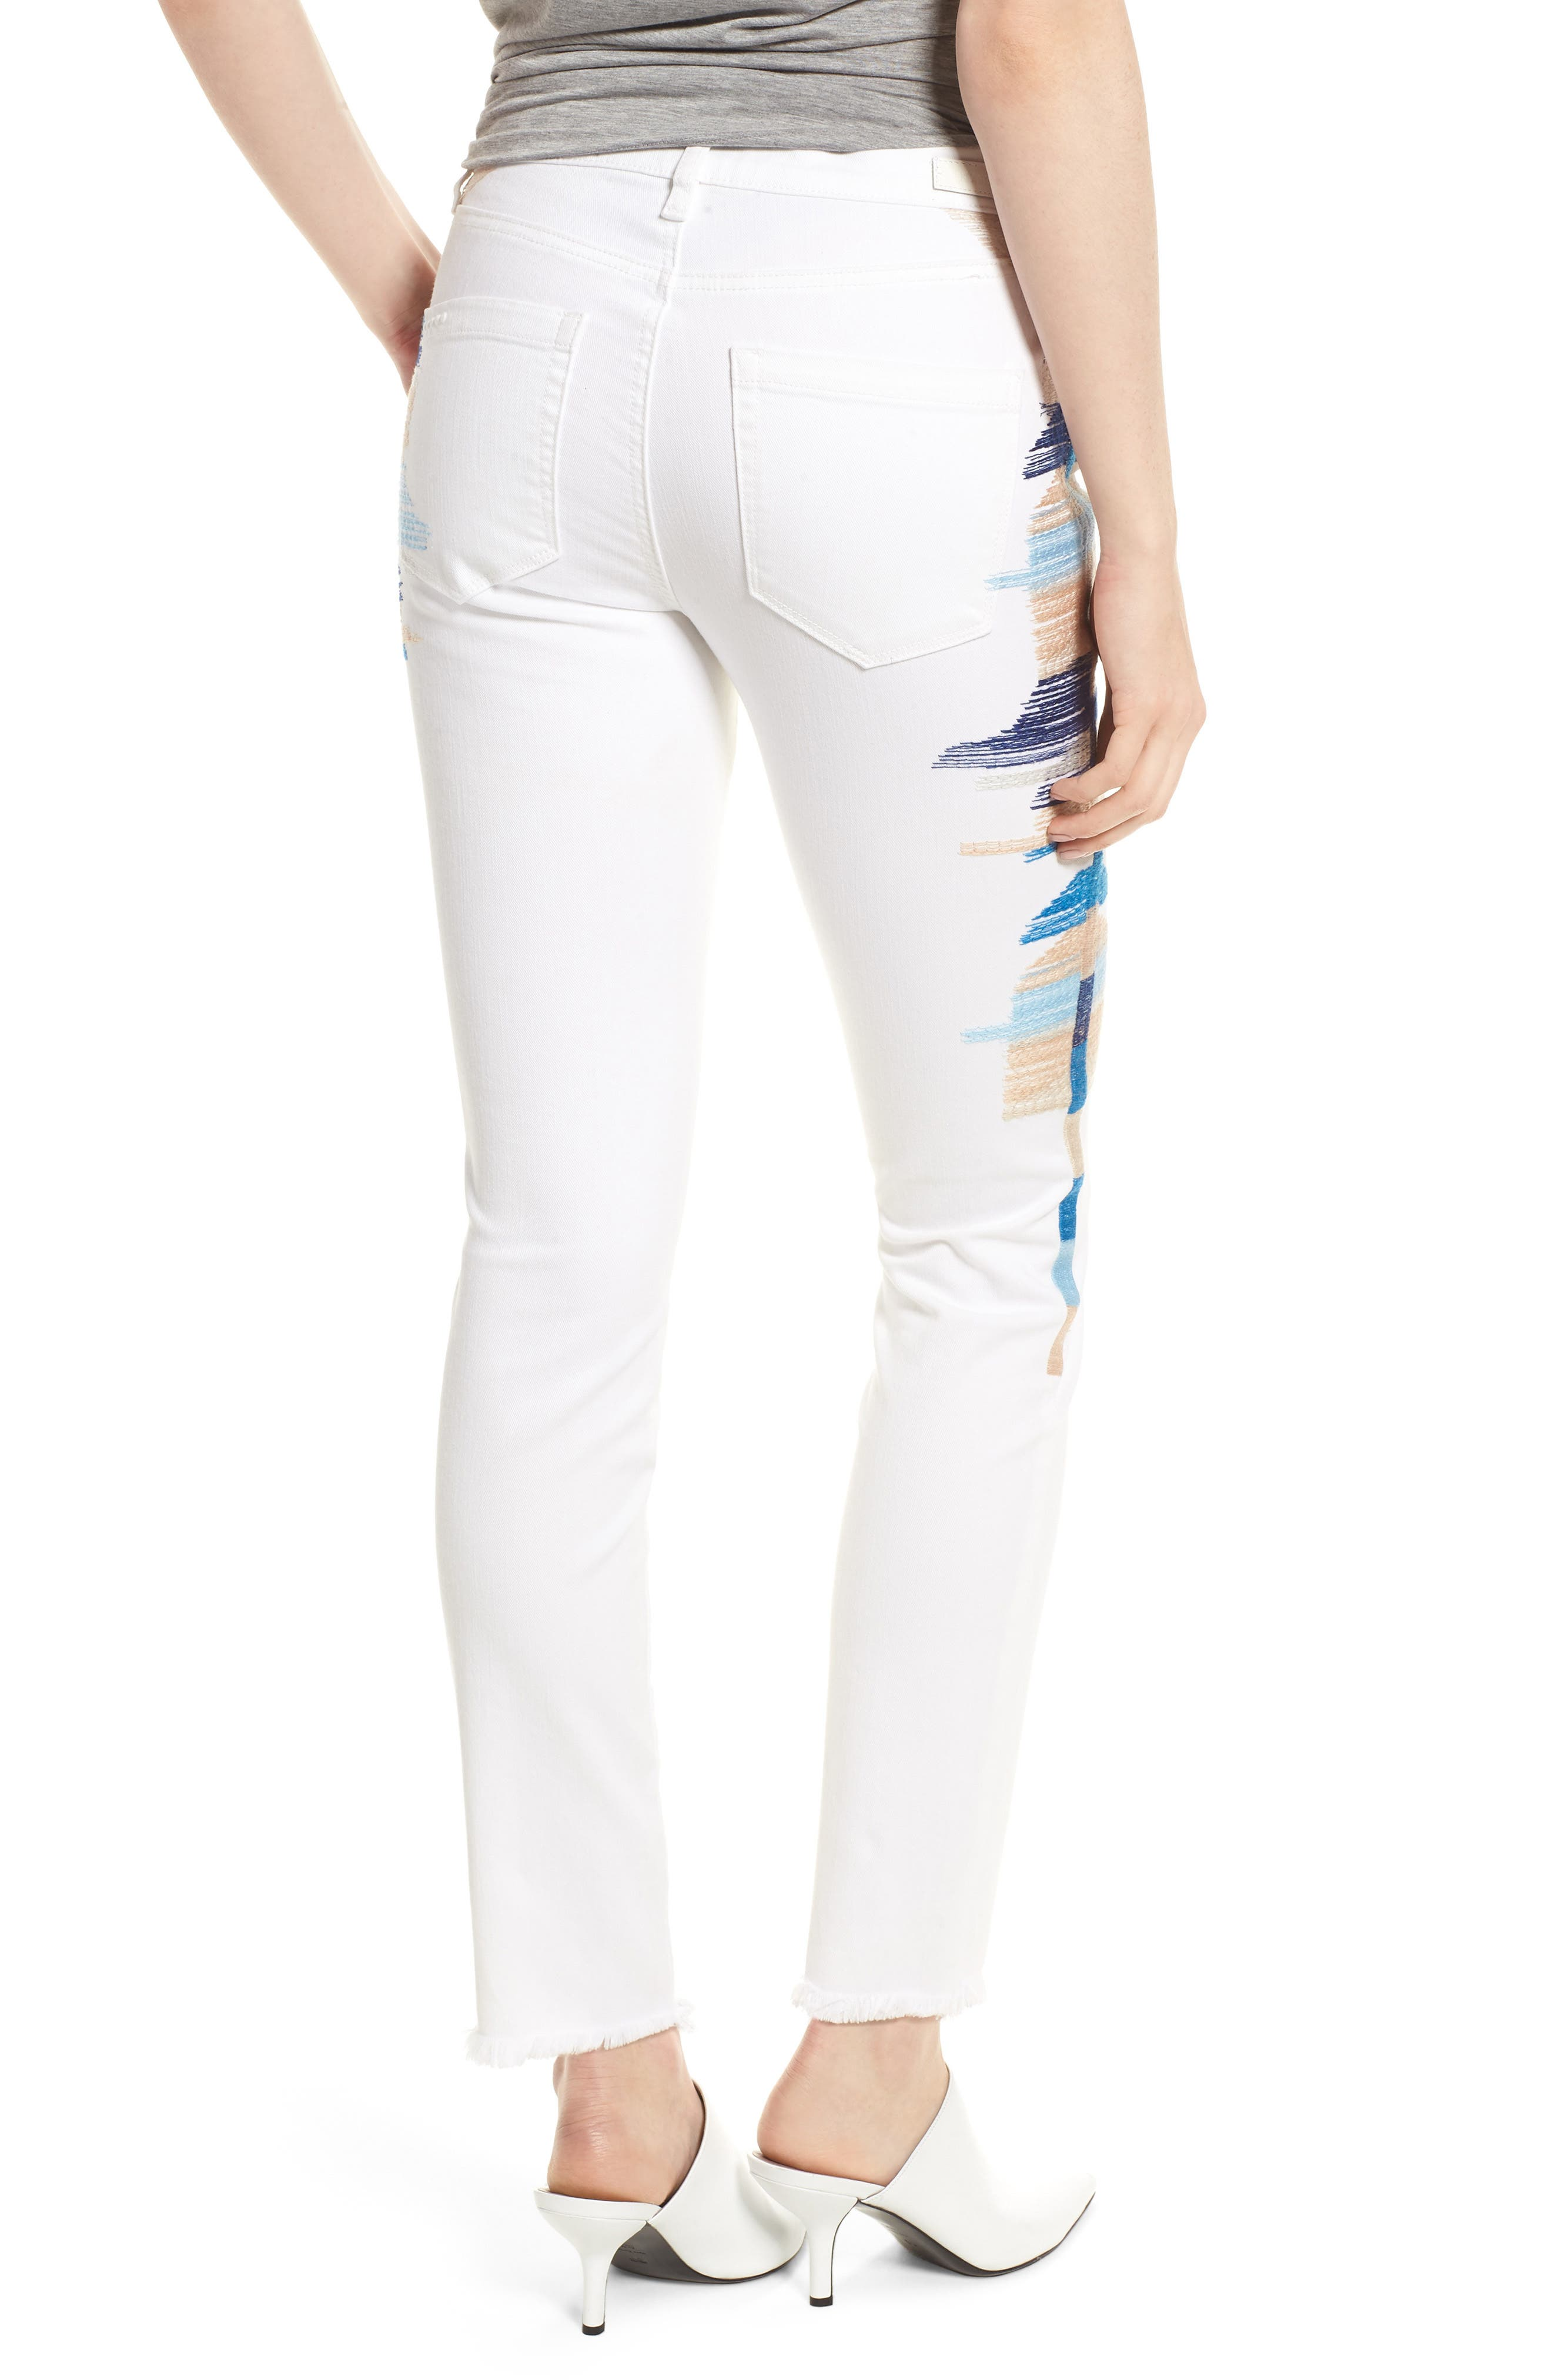 Bond Embroidered Skinny Jeans,                             Alternate thumbnail 2, color,                             110